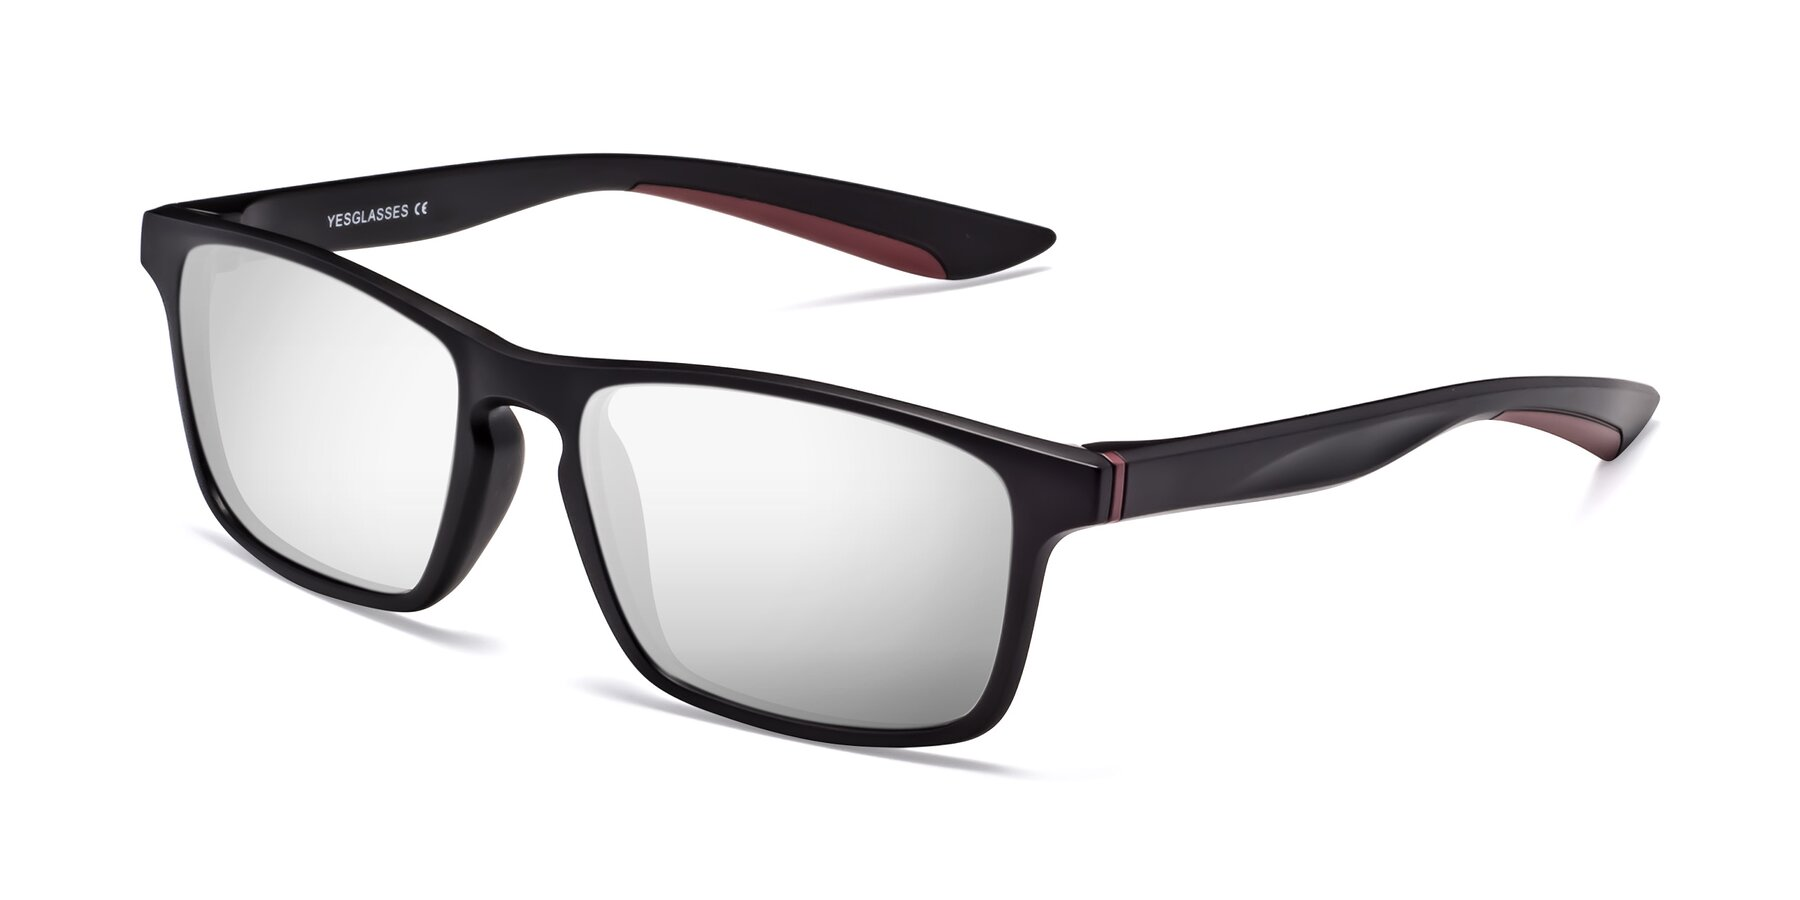 Angle of Passion in Matte Black-Wine with Silver Mirrored Lenses